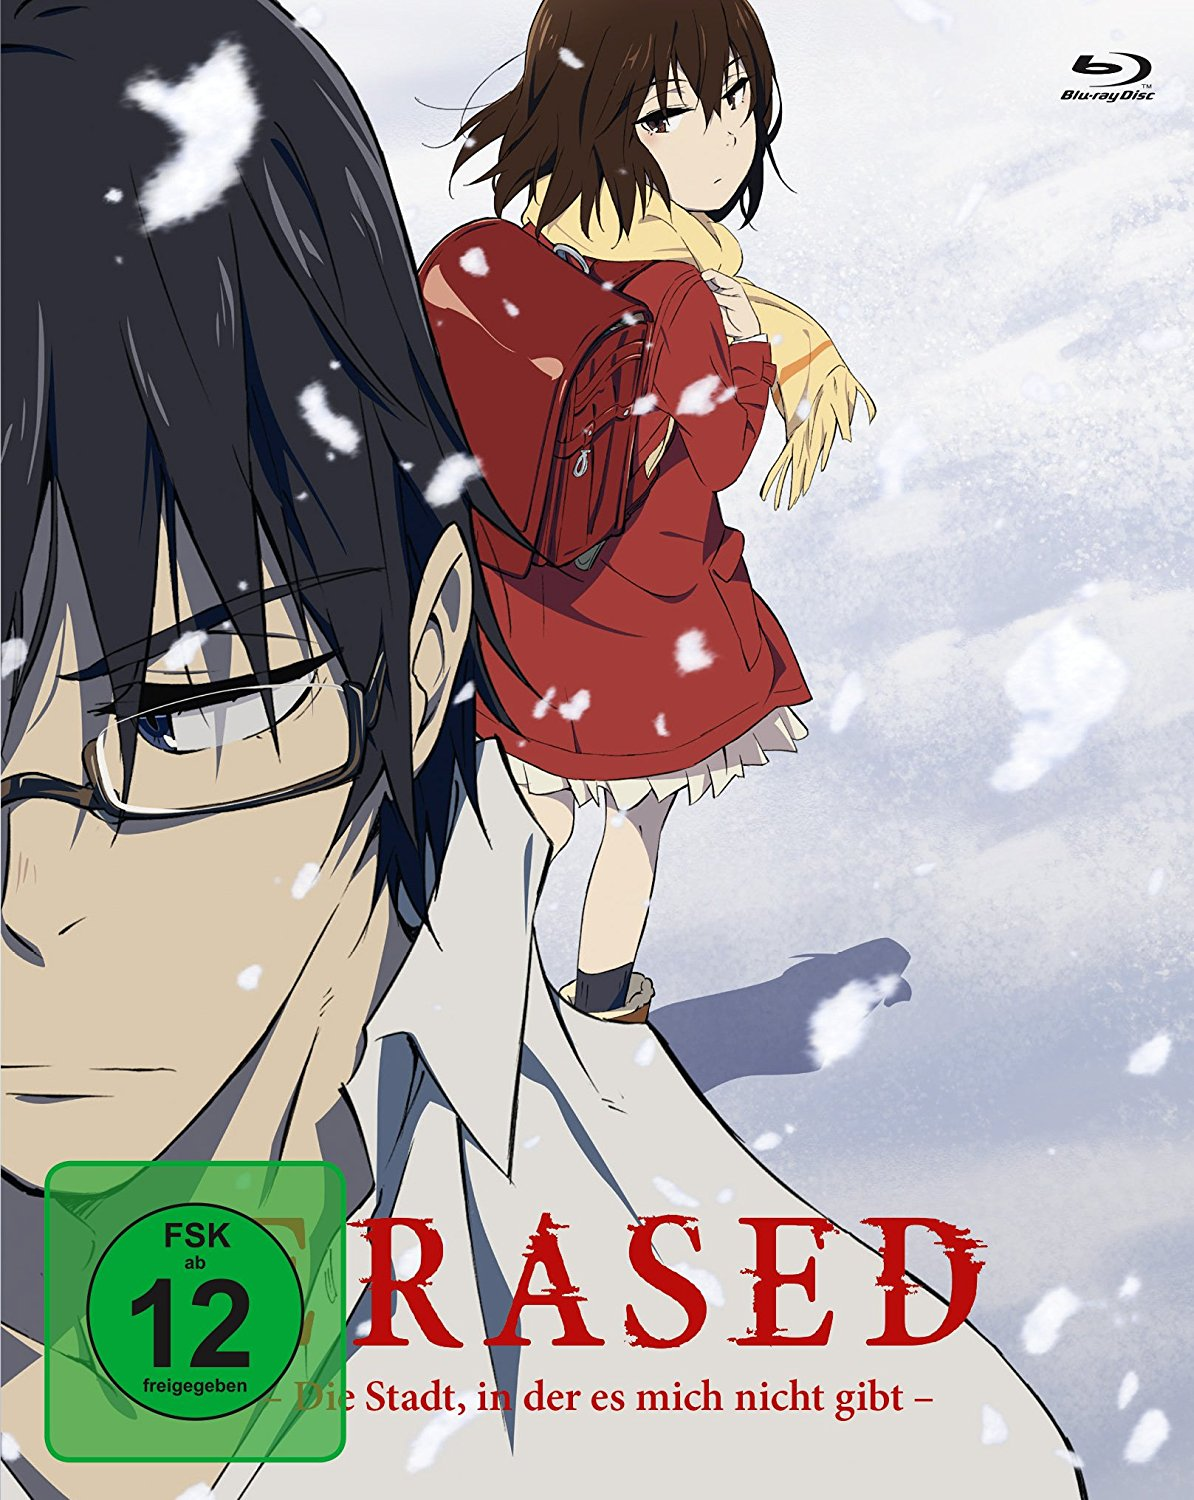 Erased-Anime-Vol-1-Bluray-Cover